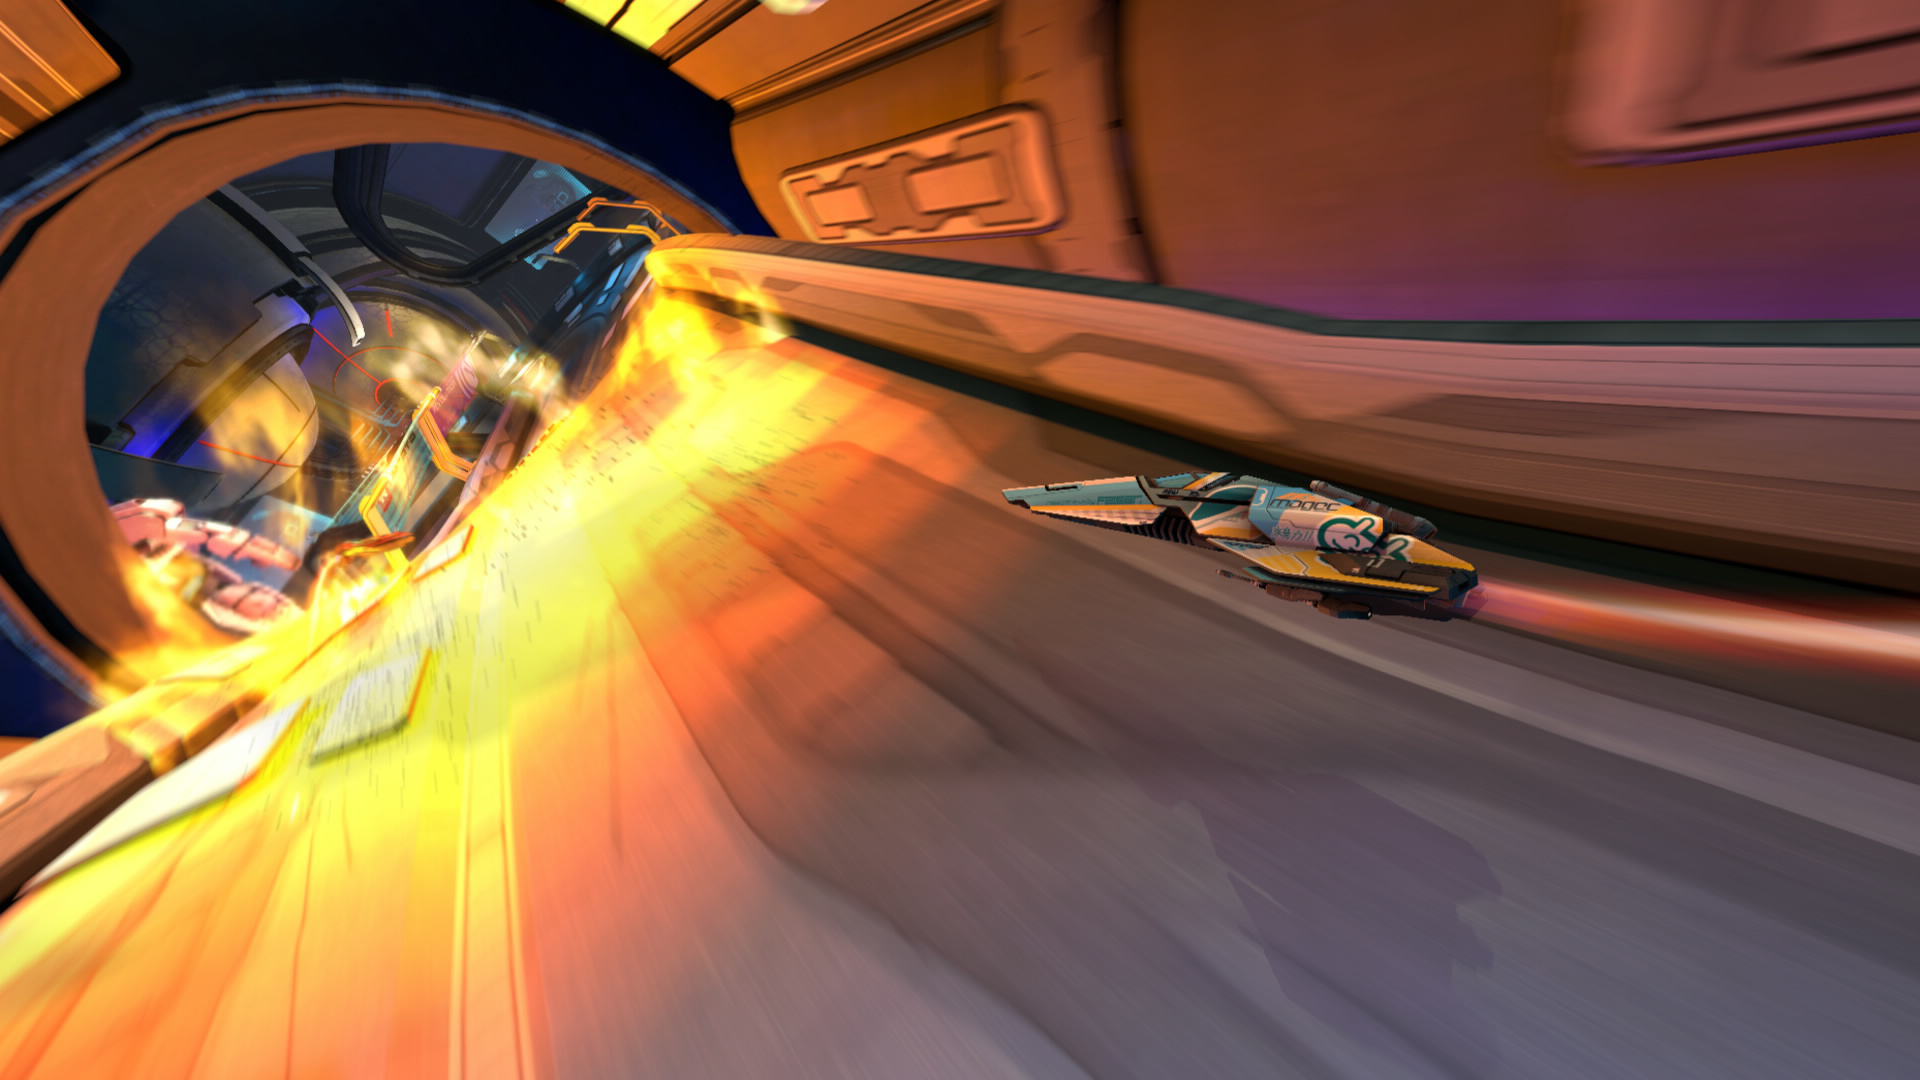 Wipeout spaceship explosion game HD Wallpaper